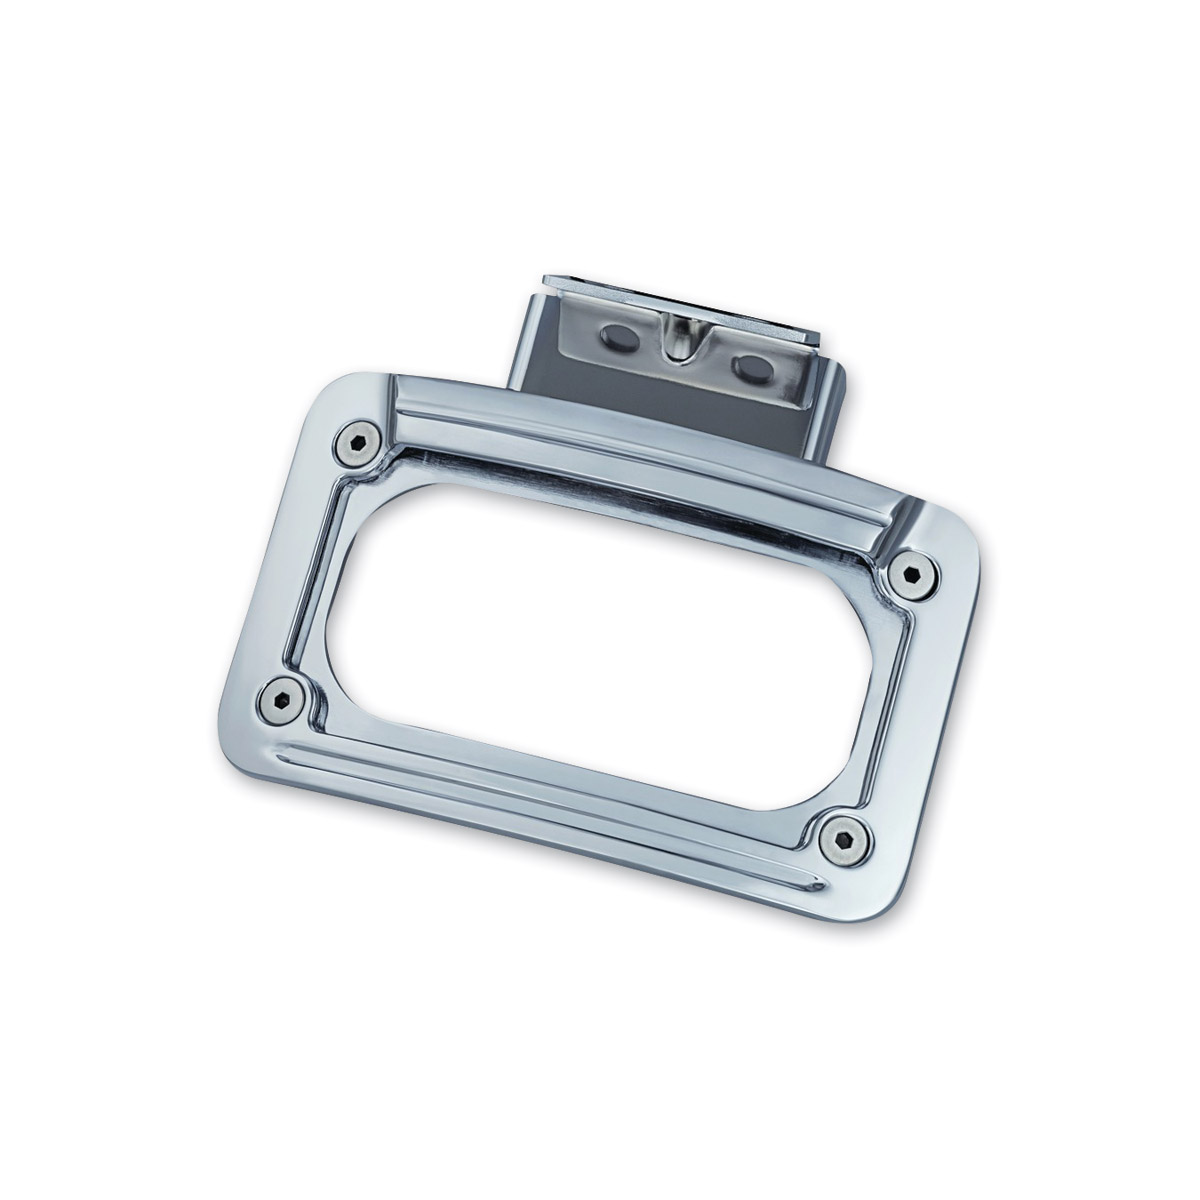 Kuryakyn LED Curved License Plate Frame with Mount